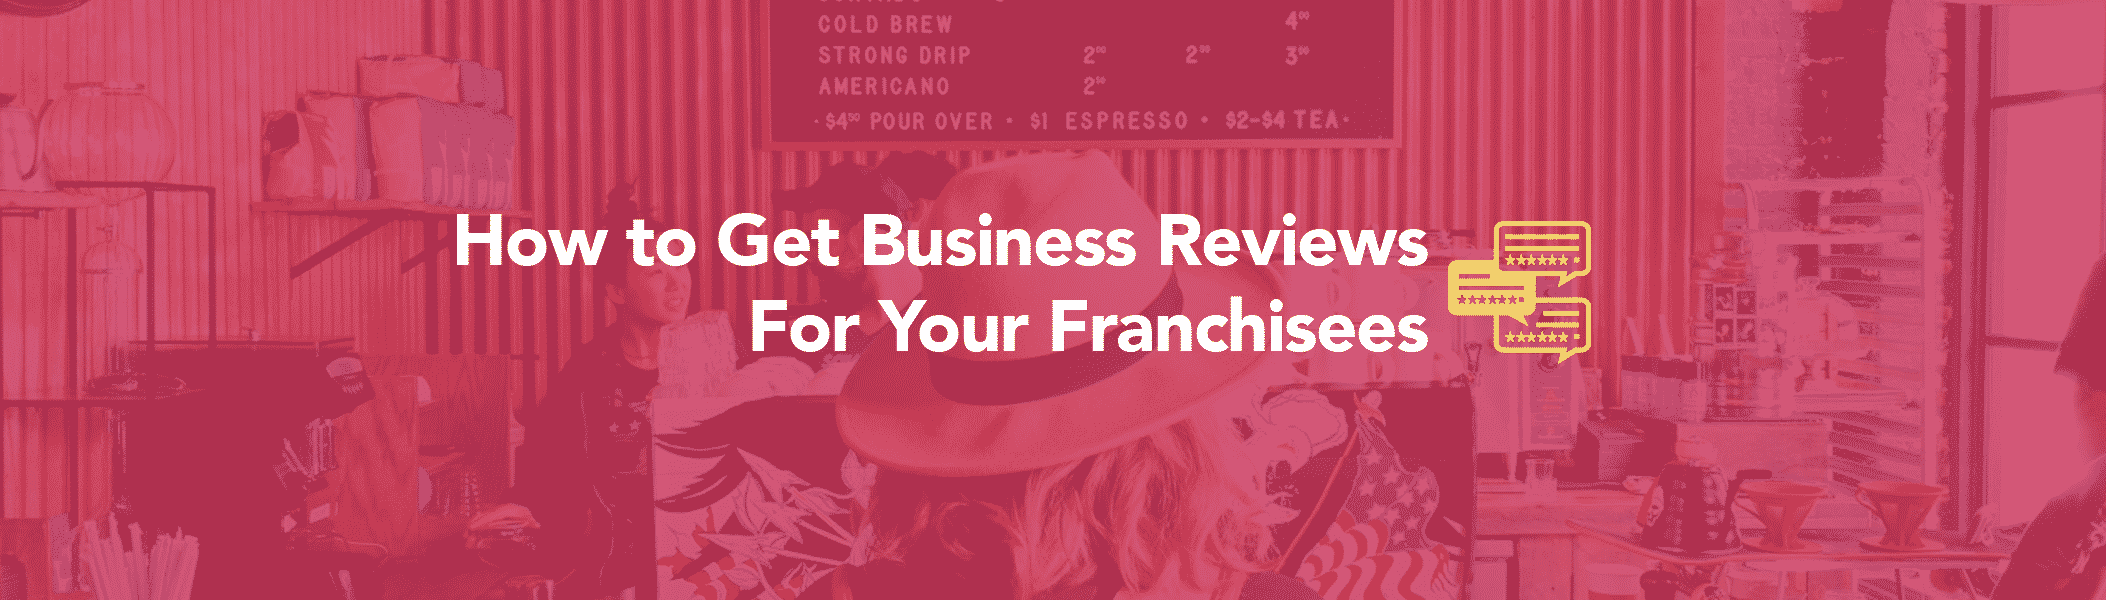 Business reviews for franchisees